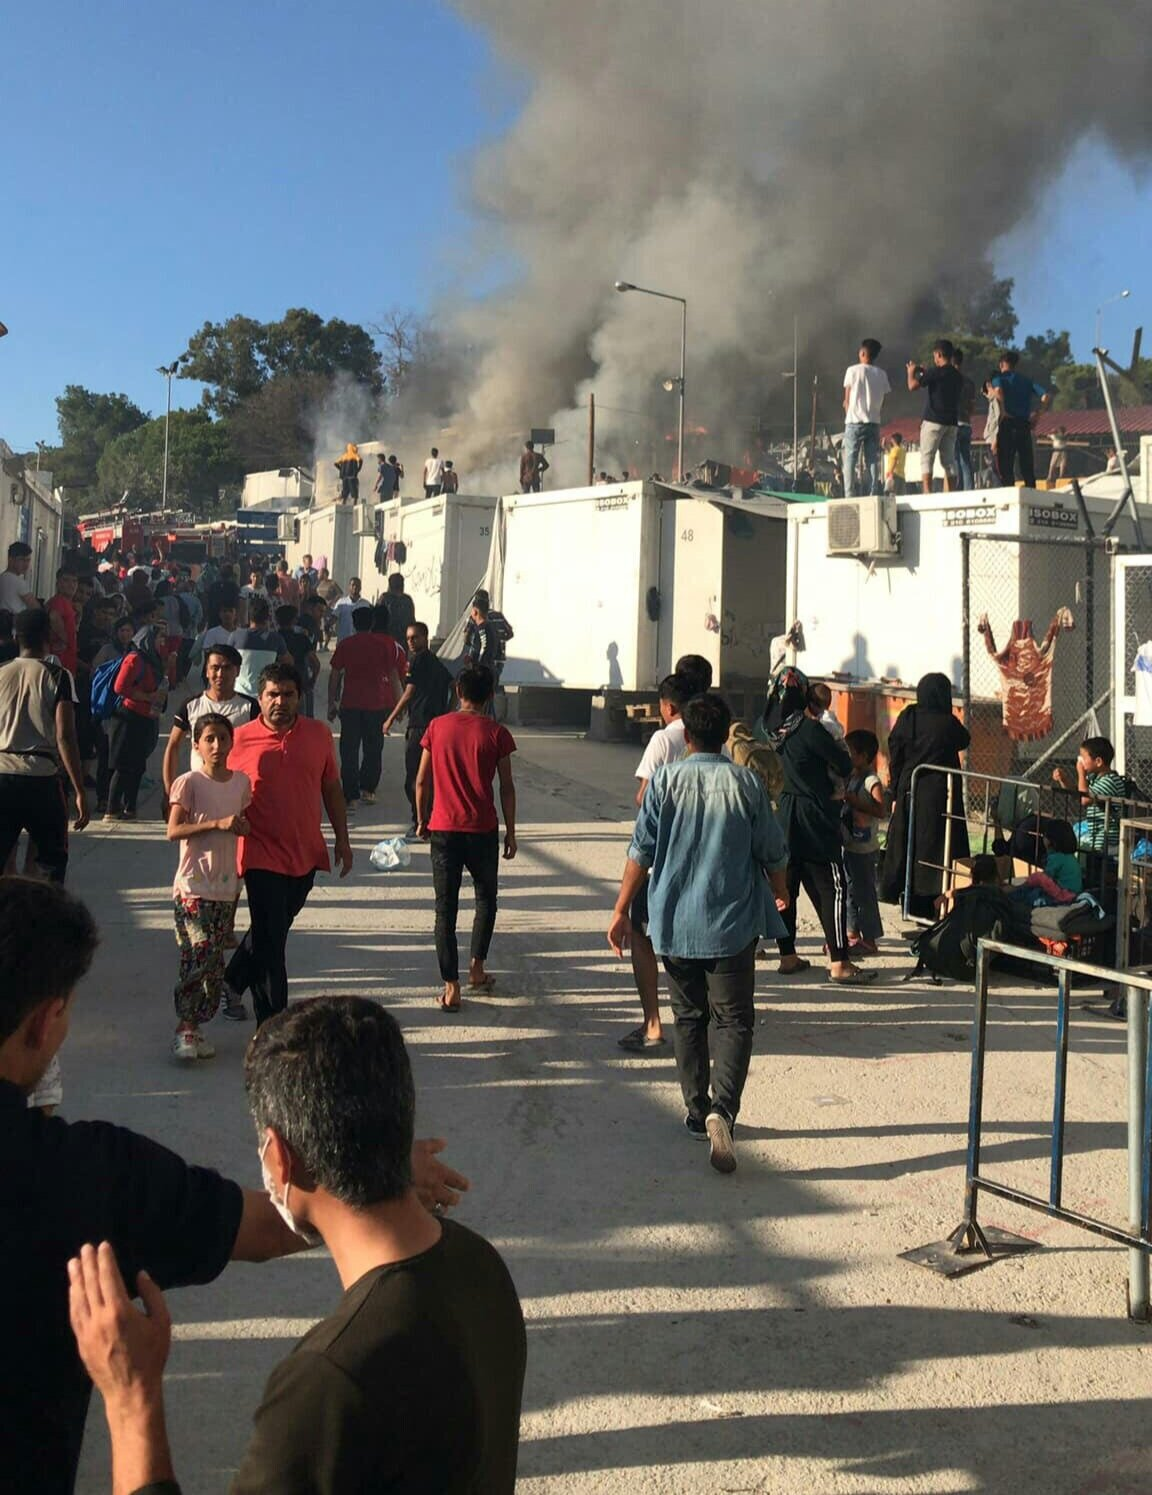 At least one woman died in the last fire in Moria camp on 29th of Septemer 2019, many others including babies were heavily injured. (image: RESPOND Project Team)